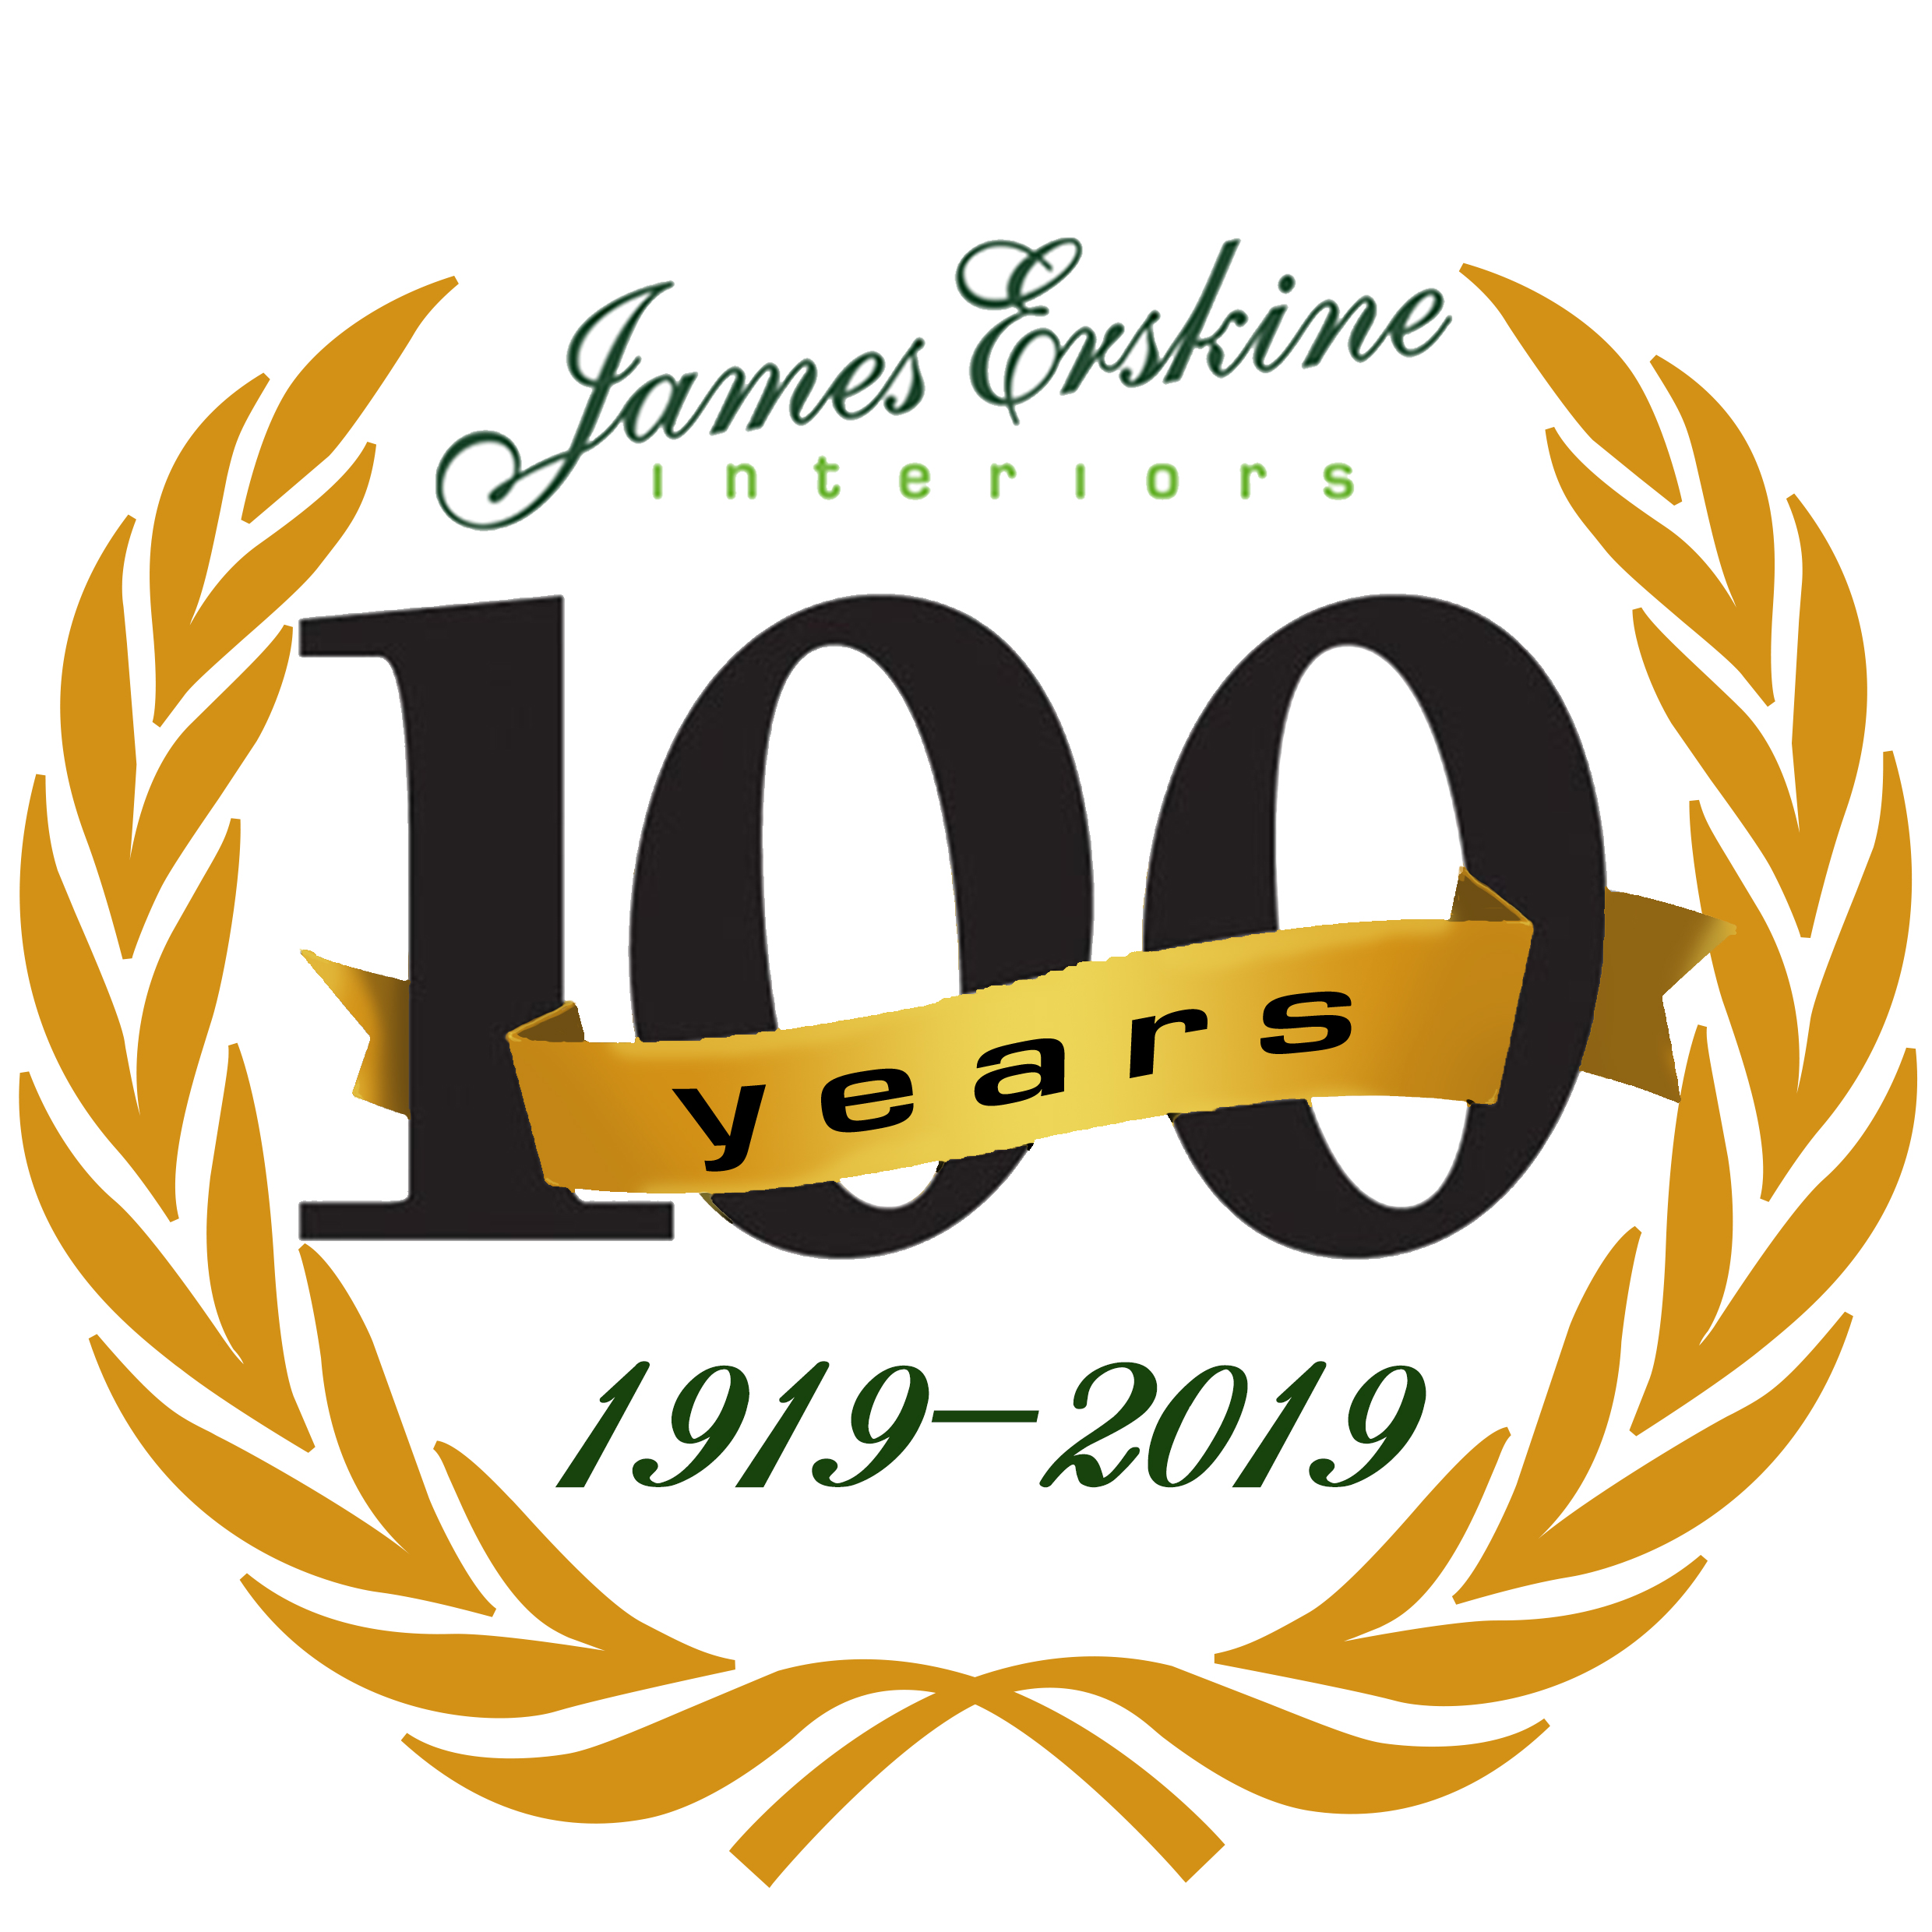 James Erskine Interiors Centenary